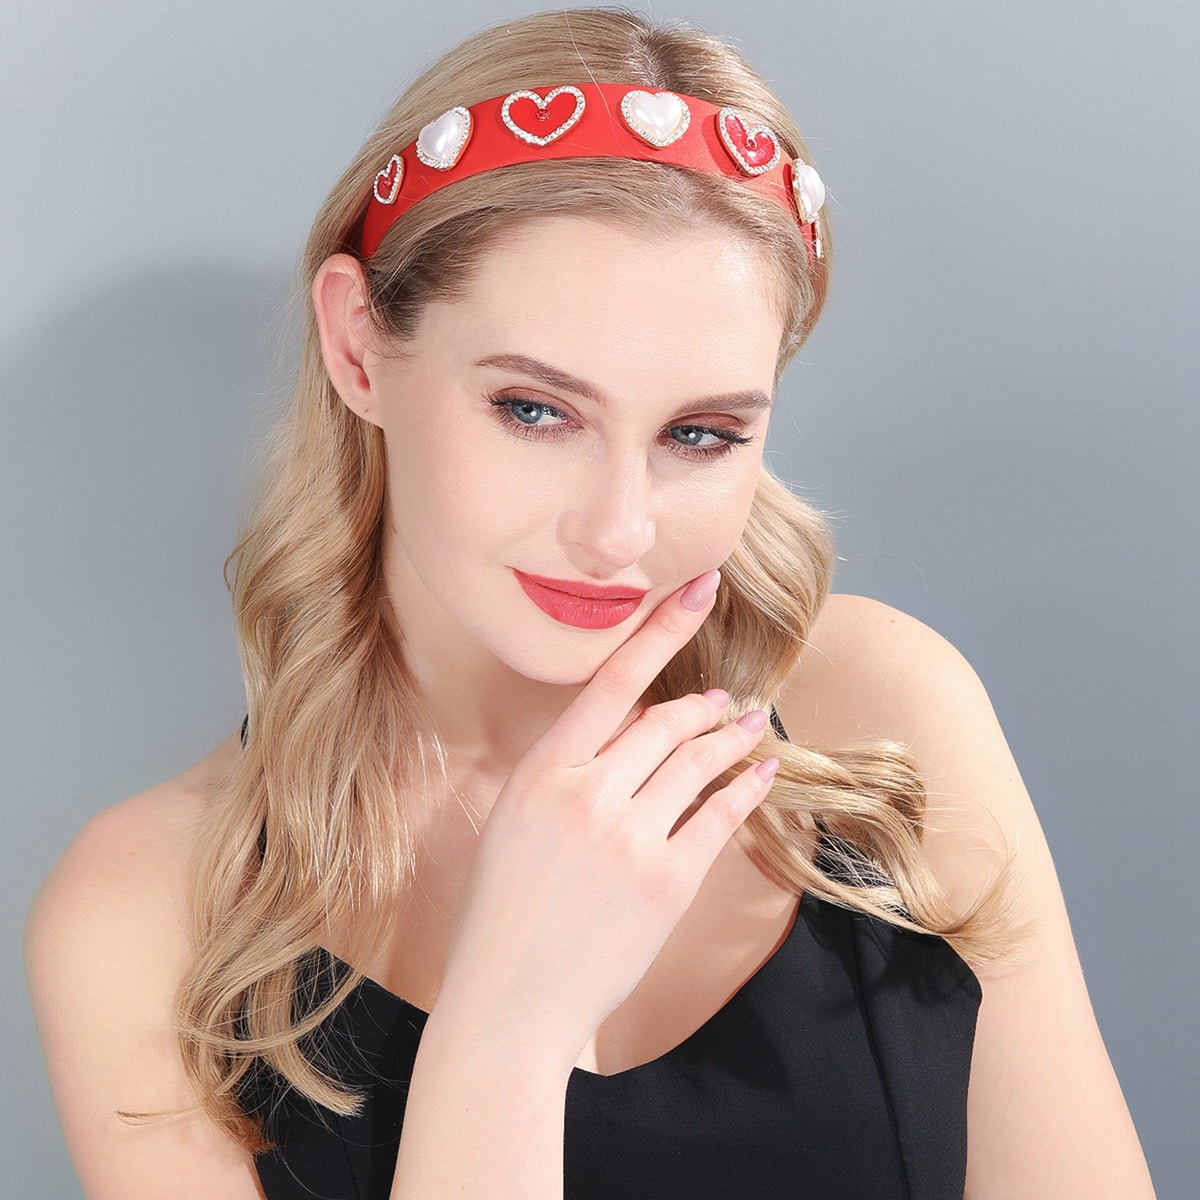 Headbands are amazing for its utility and hair dressing